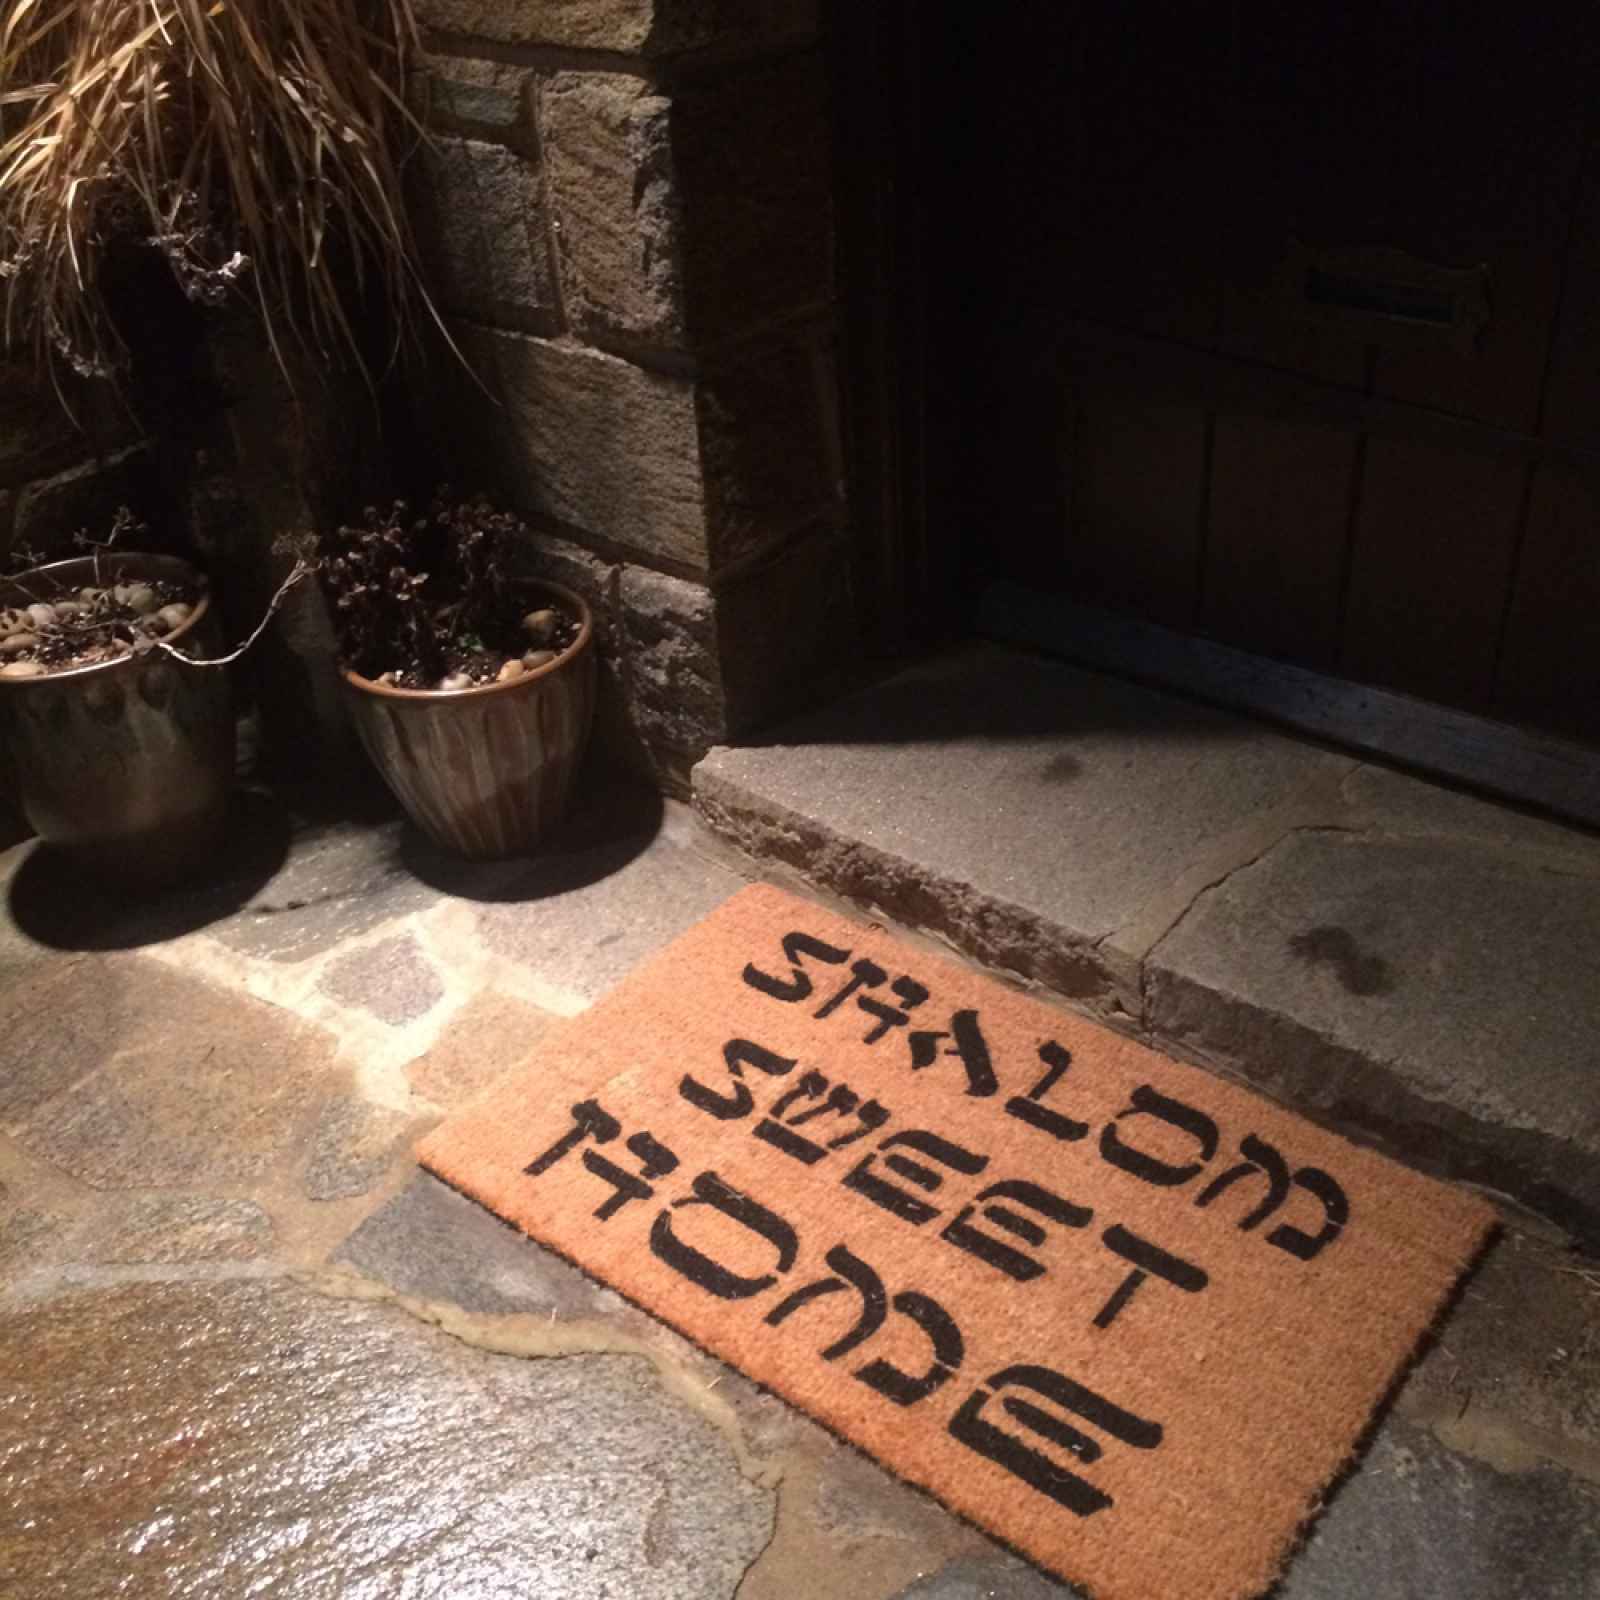 Shalom Y All Funny Jewish Welcome Doormat By Damn Good